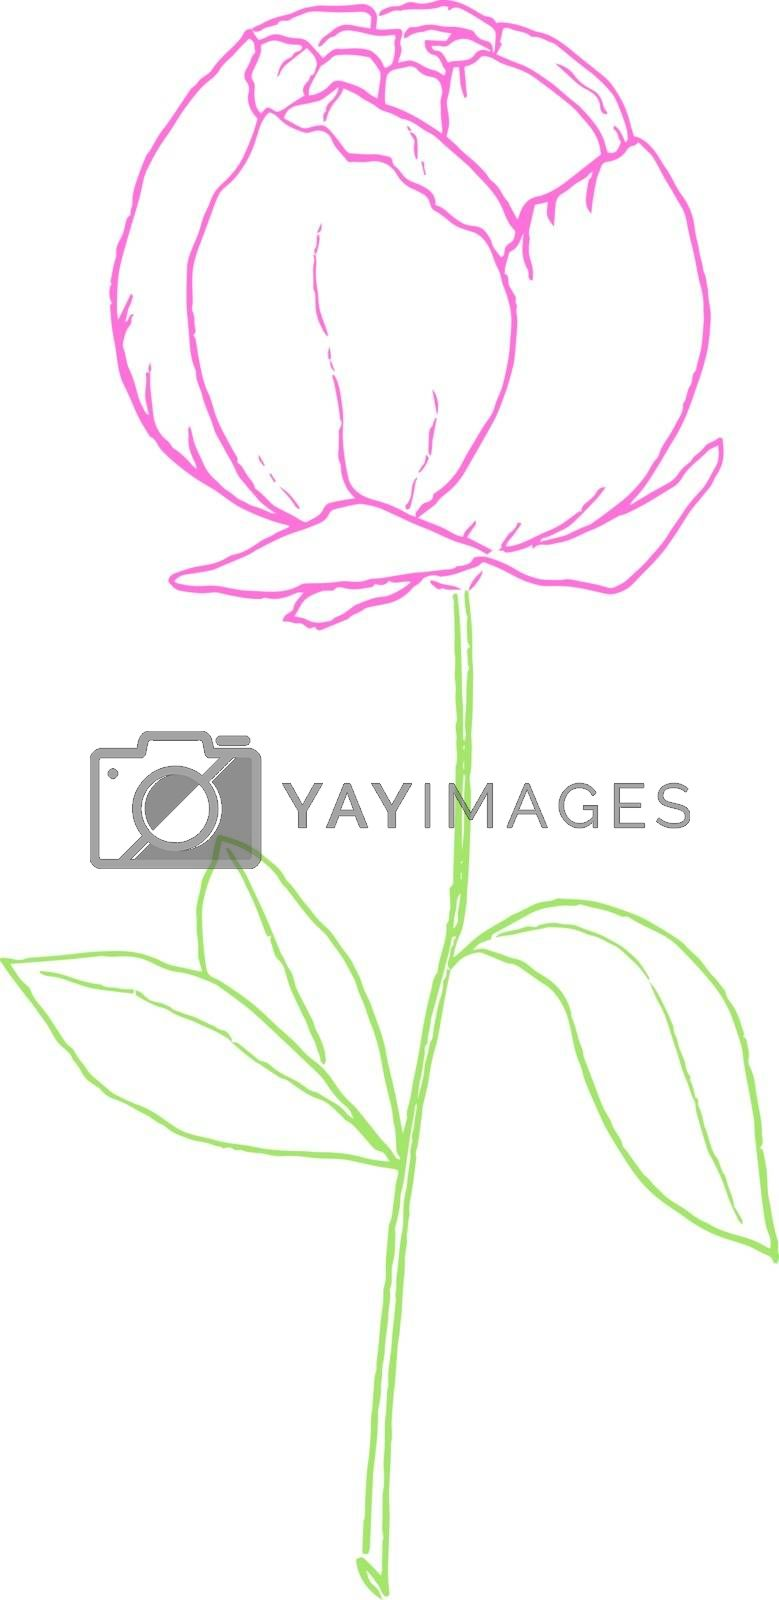 Royalty free image of Drawing of a purple-colored rose with green leaves vector or col by Morphart